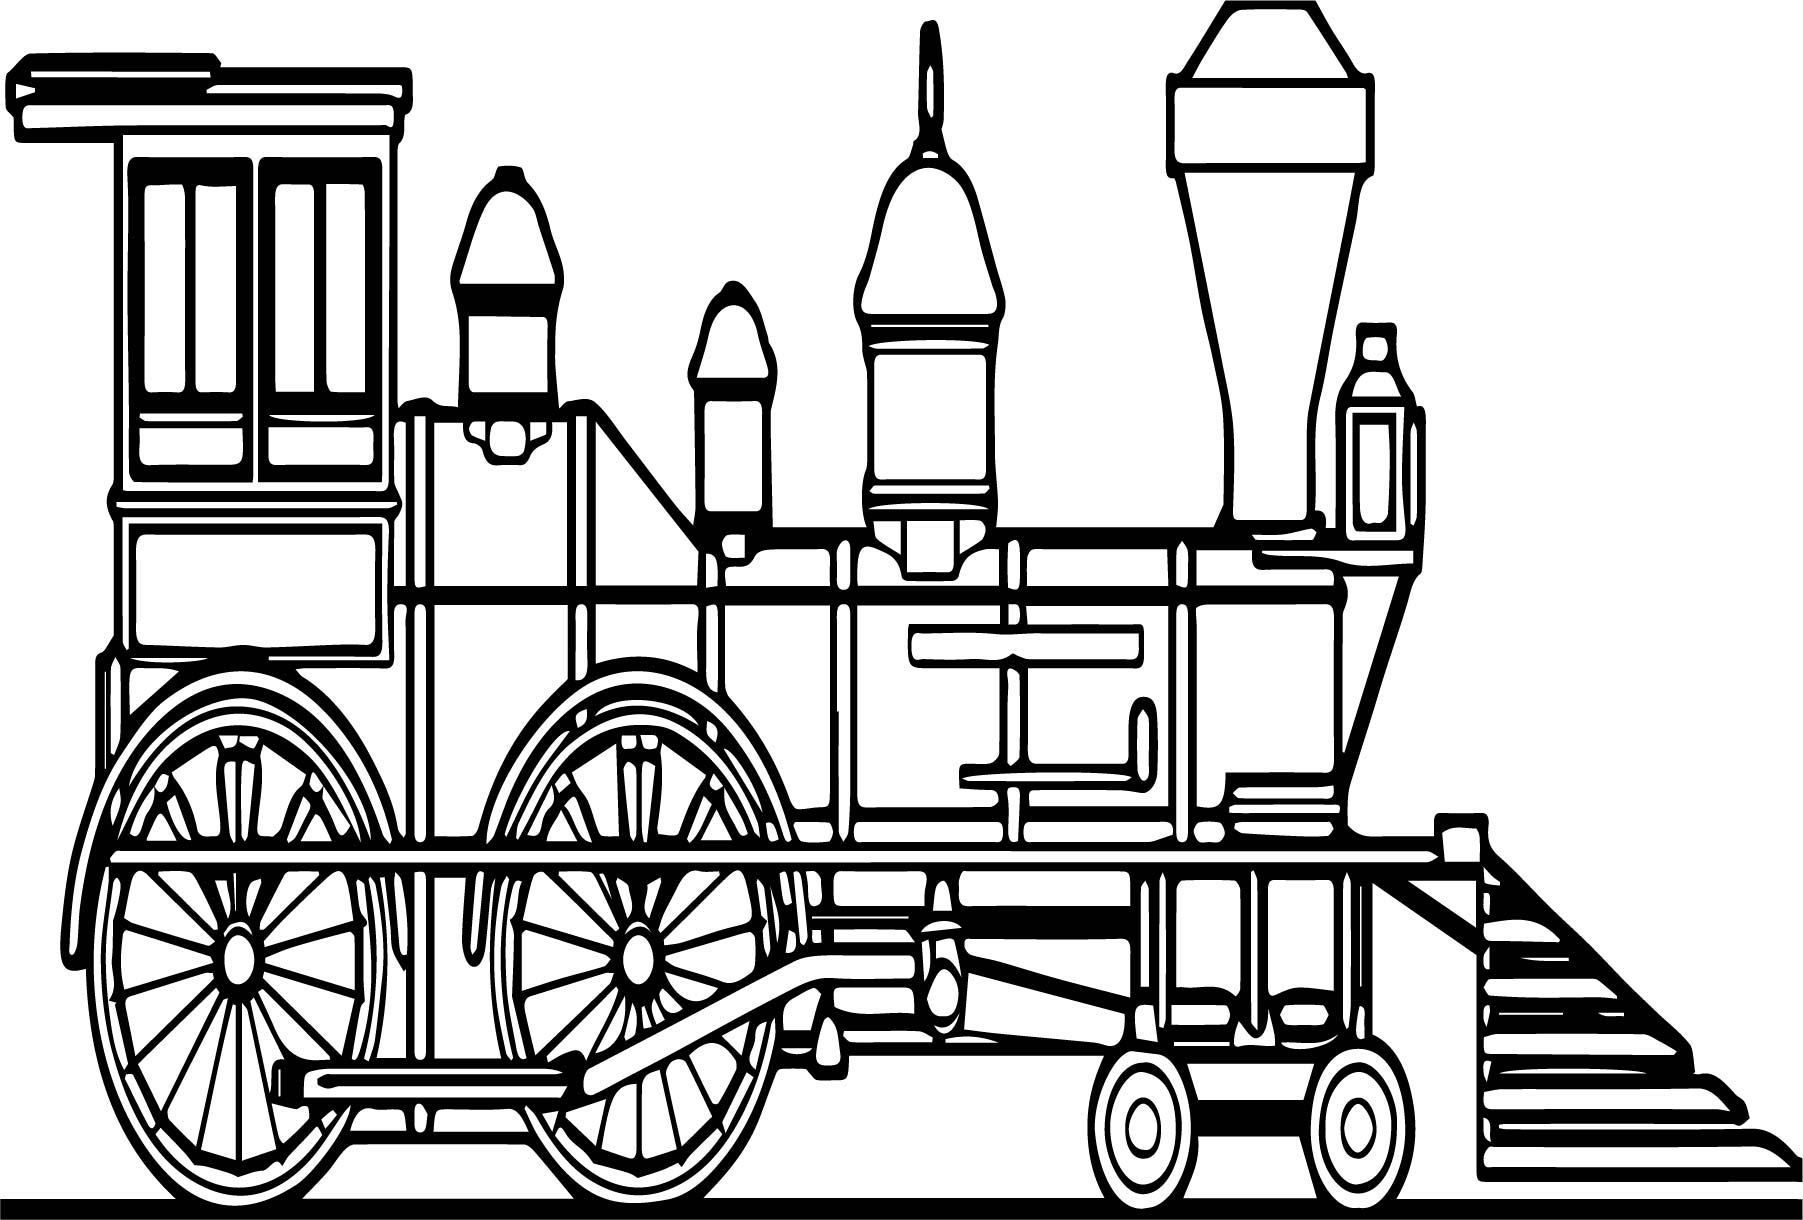 coloring page of train engine 4 4 0 steam locomotive coloring pages coloring pages of coloring engine page train